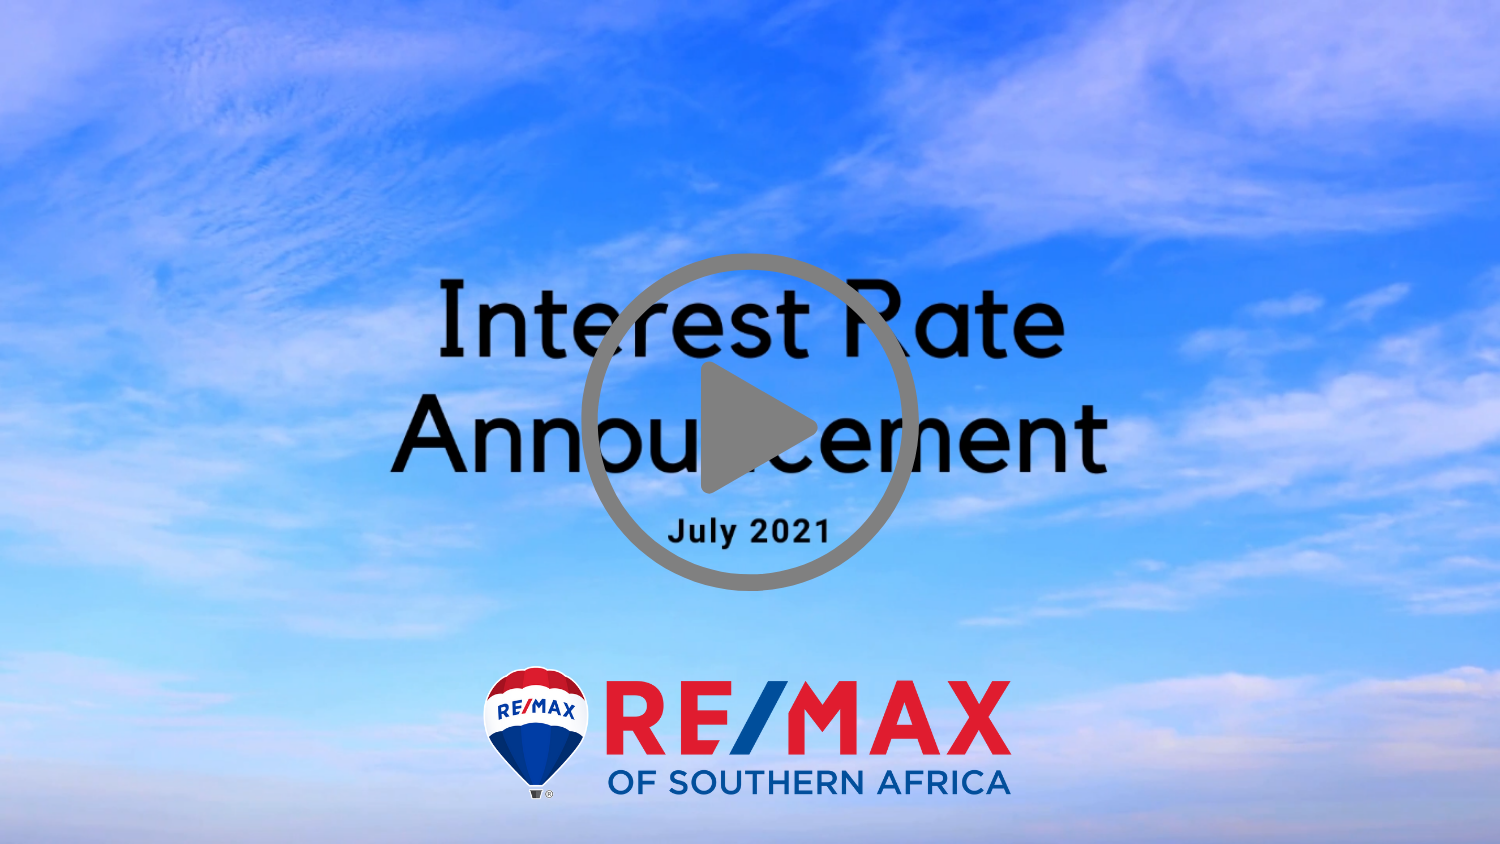 INTEREST RATES HOLD STEADY IN FACE OF ECONOMIC INSTABILITY